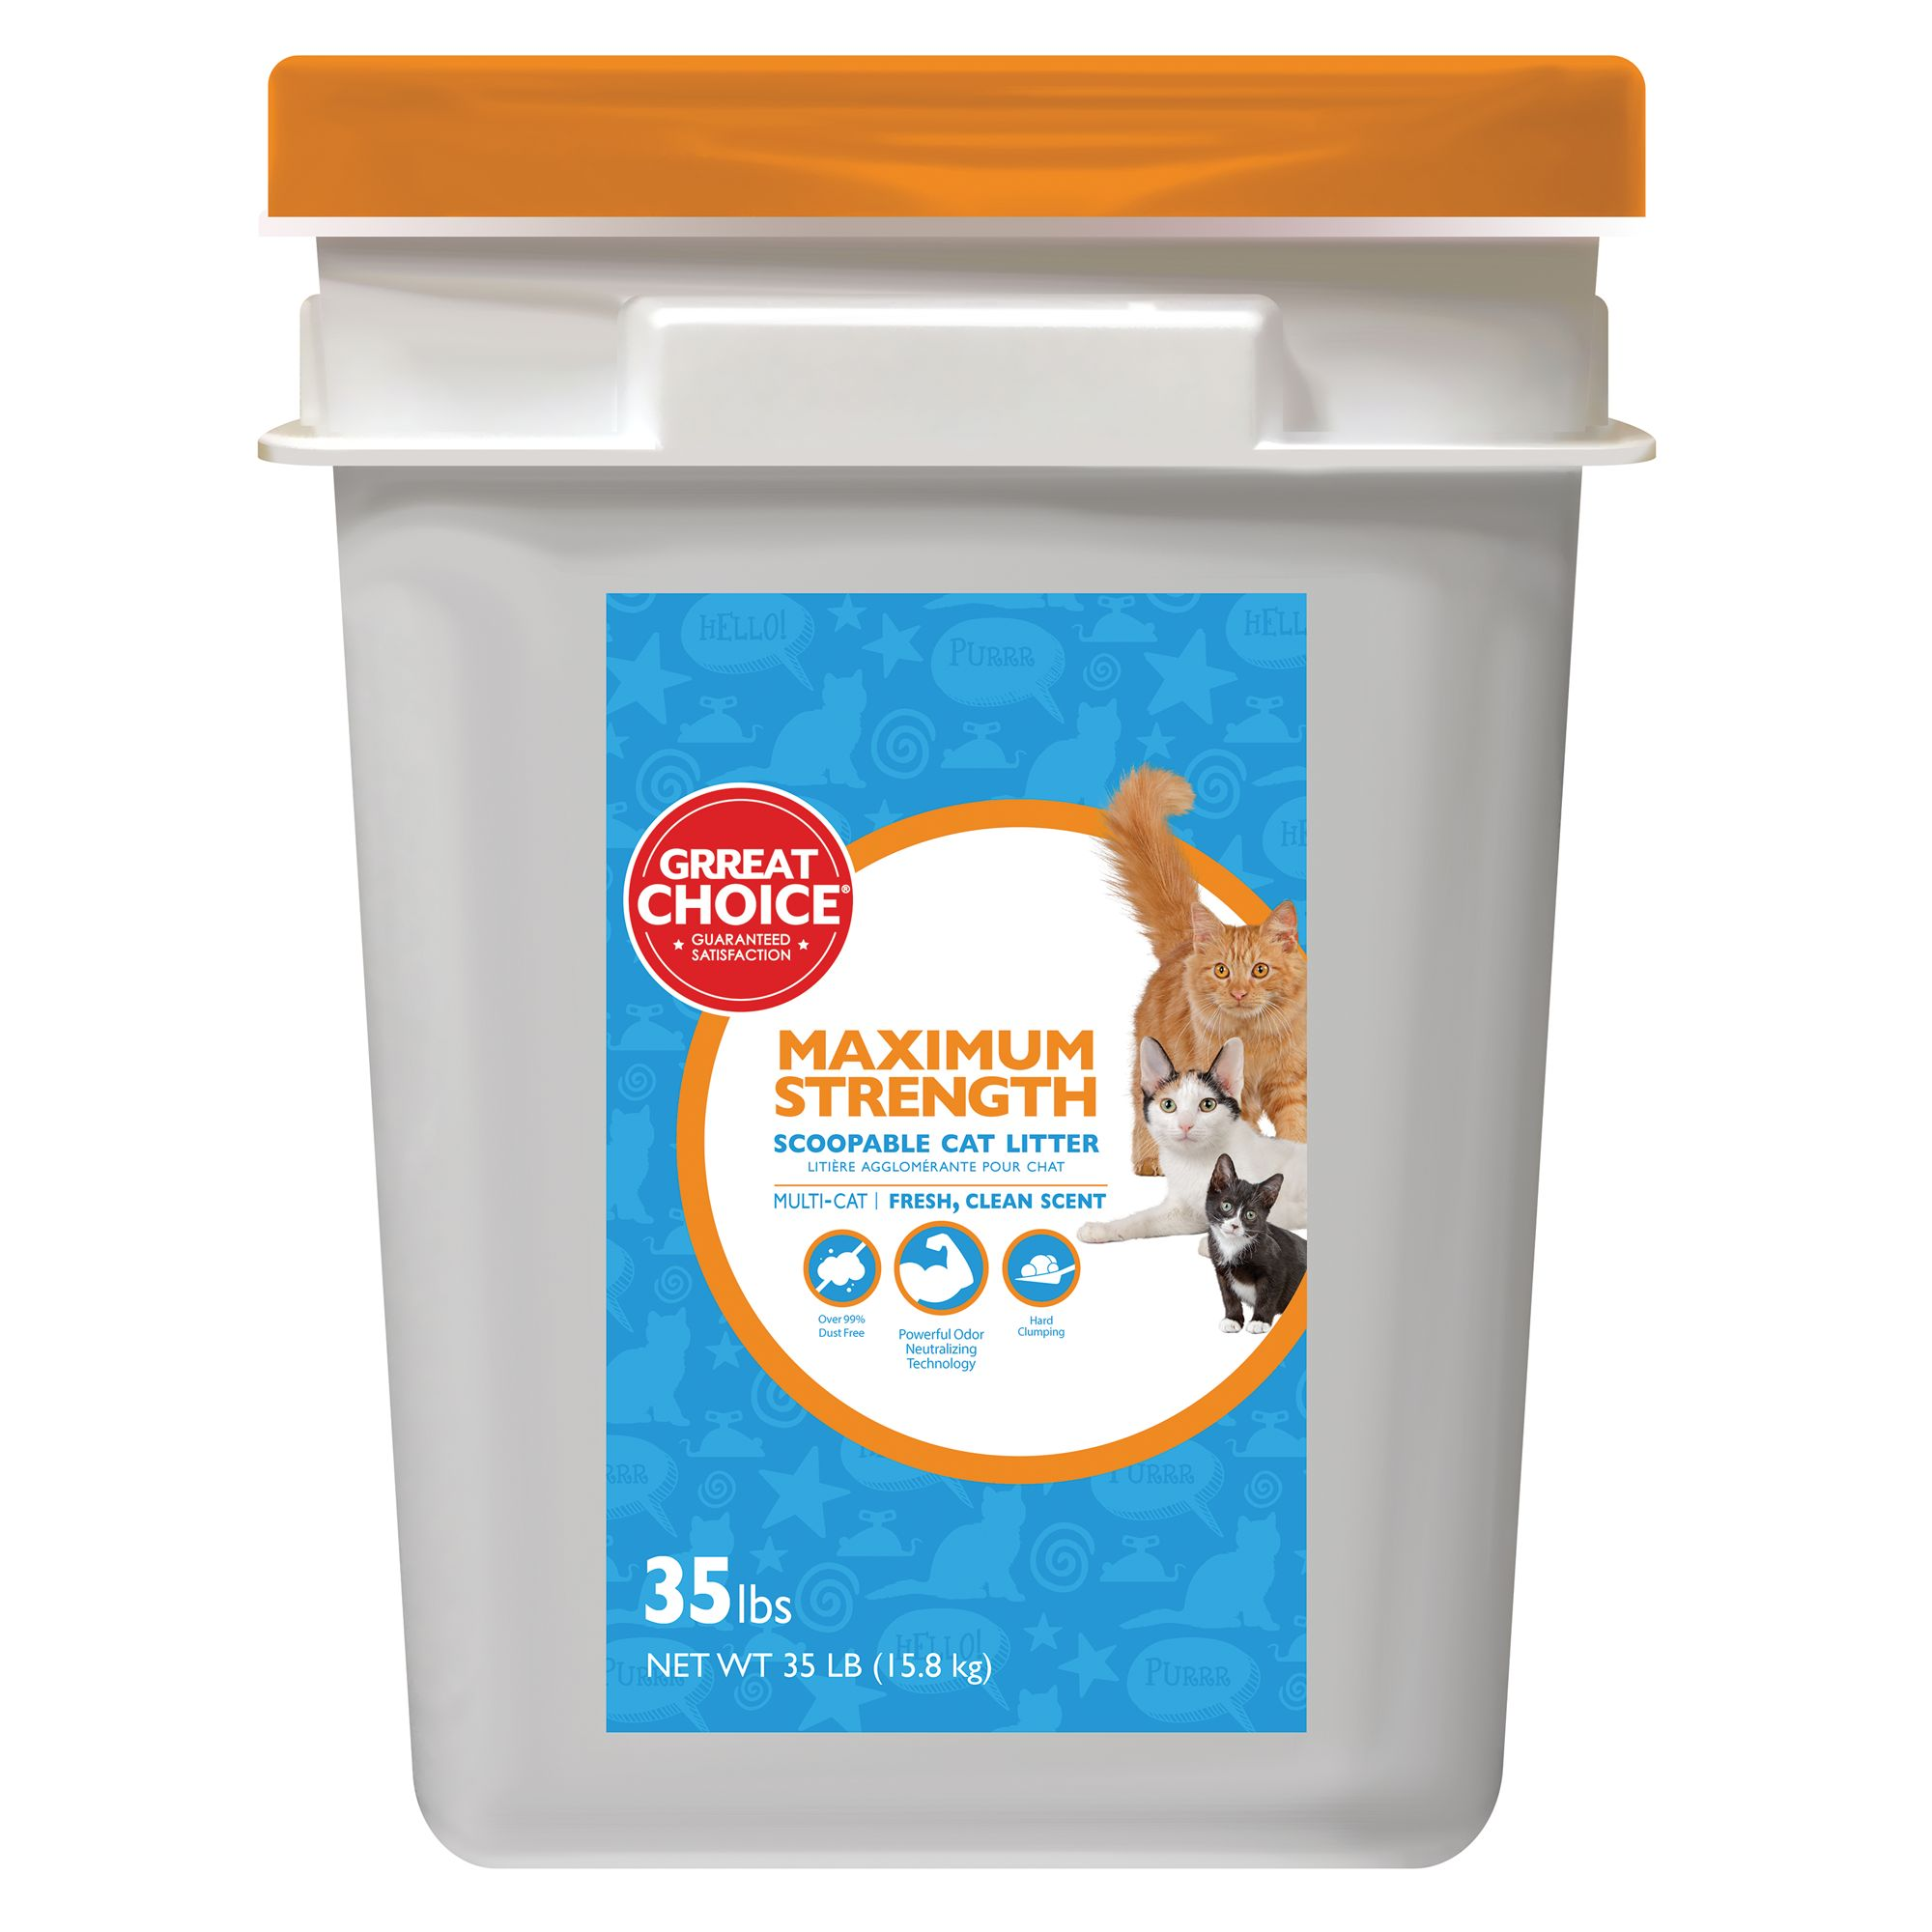 Grreat Choice Maximum Strength Cat Litter - Scoopable, Multi-Cat, Fresh Scent size: 35 Lb 5257268